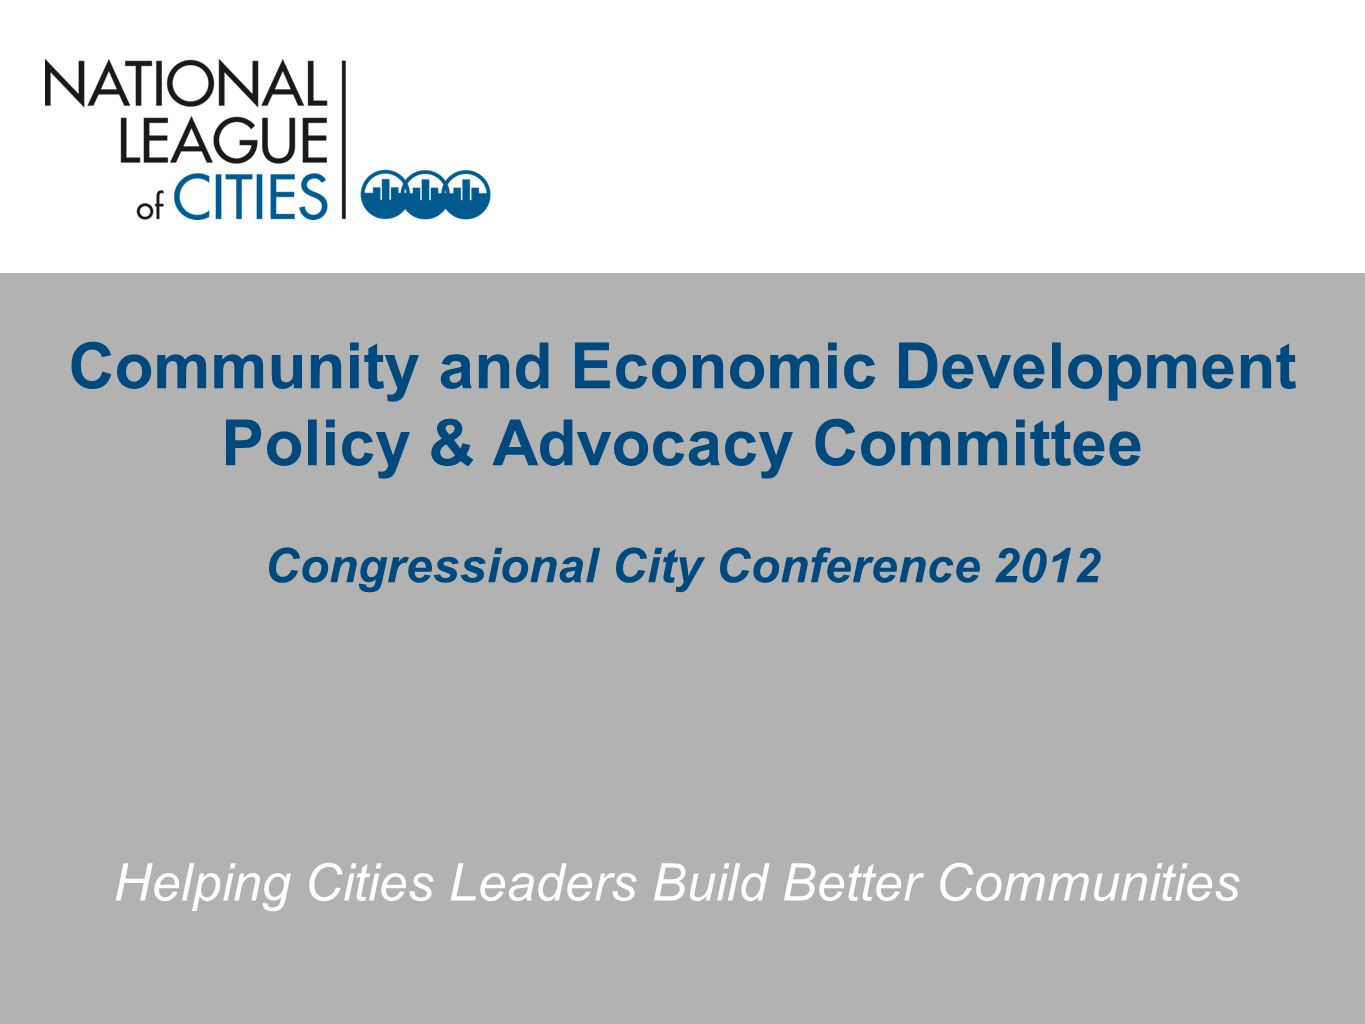 Community and Economic Development Policy & Advocacy Committee Congressional City Conference 2012 Helping Cities Leaders Build Better Communities